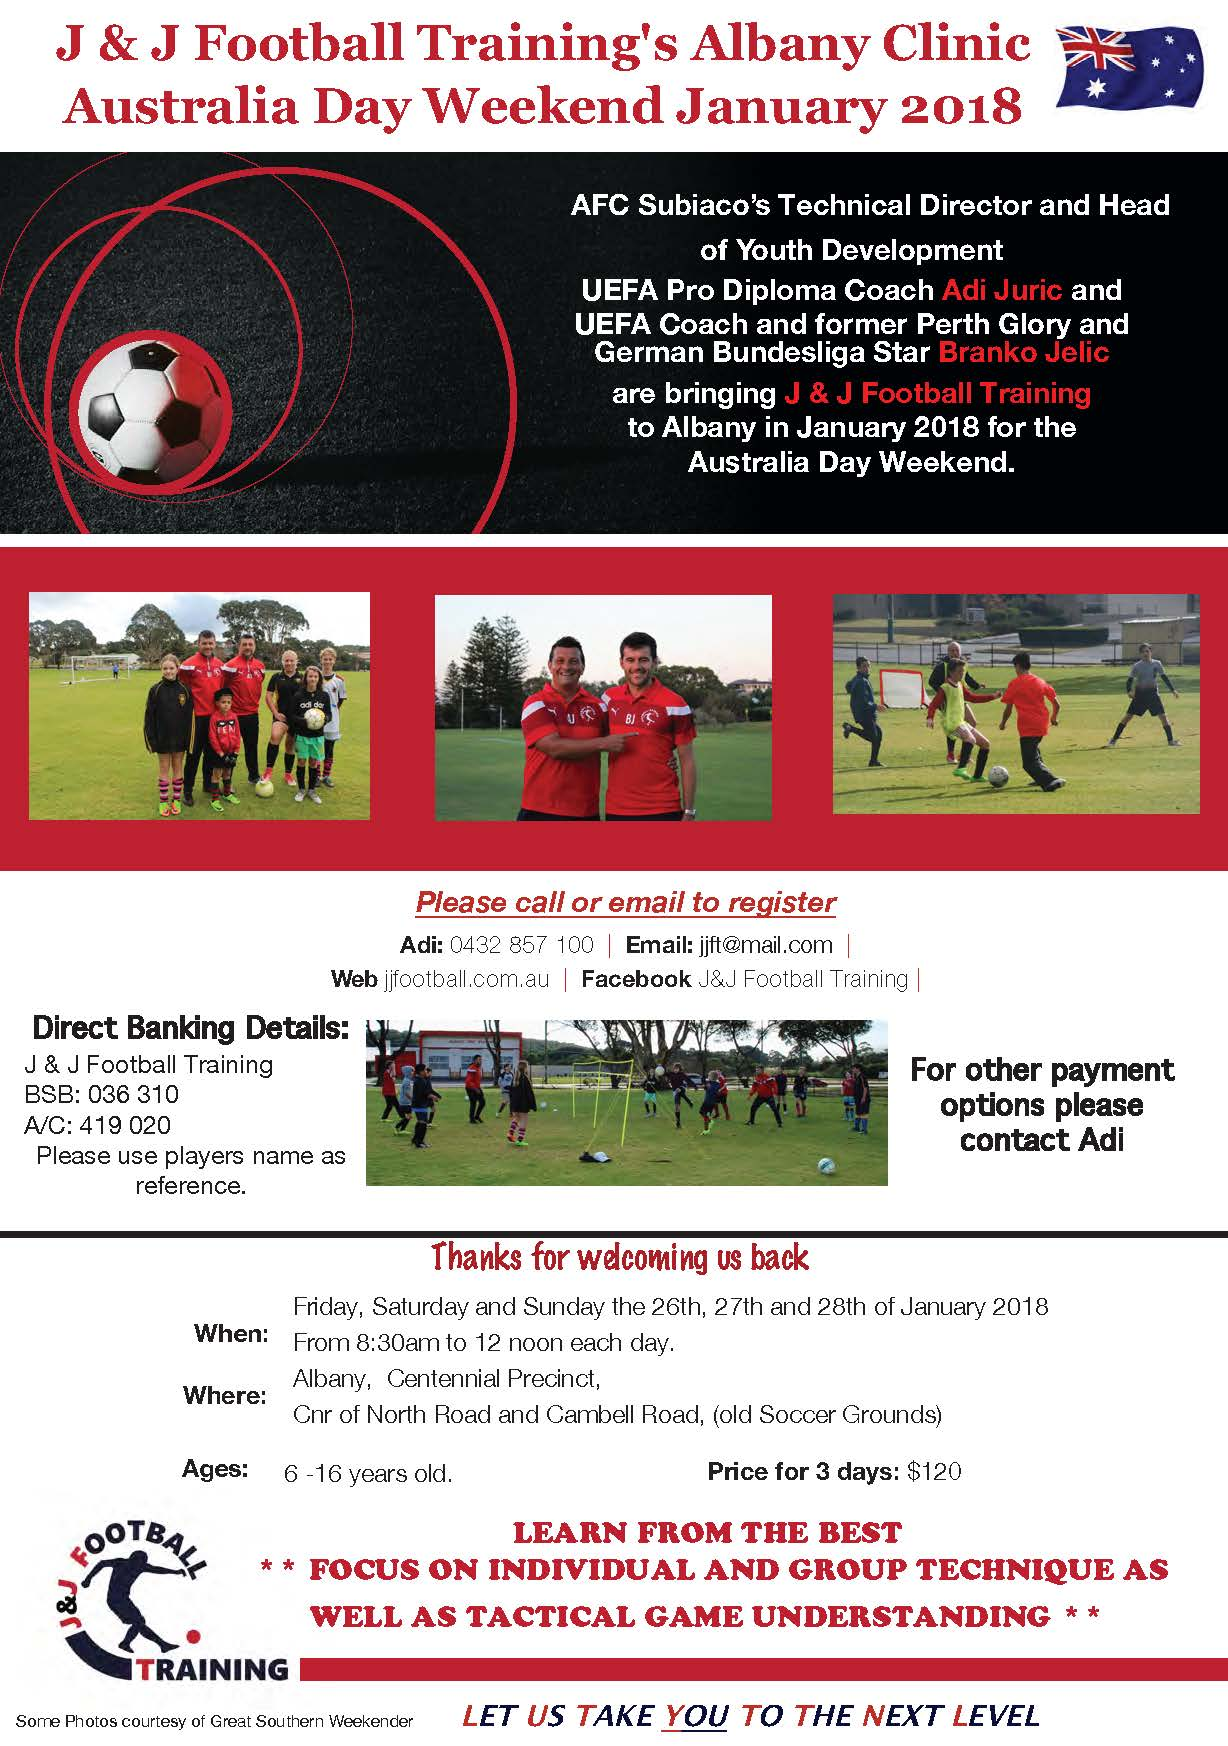 Australia Day Soccer Clinic in Albany!!! 26th, 27th and 28th of January…We are back!!!